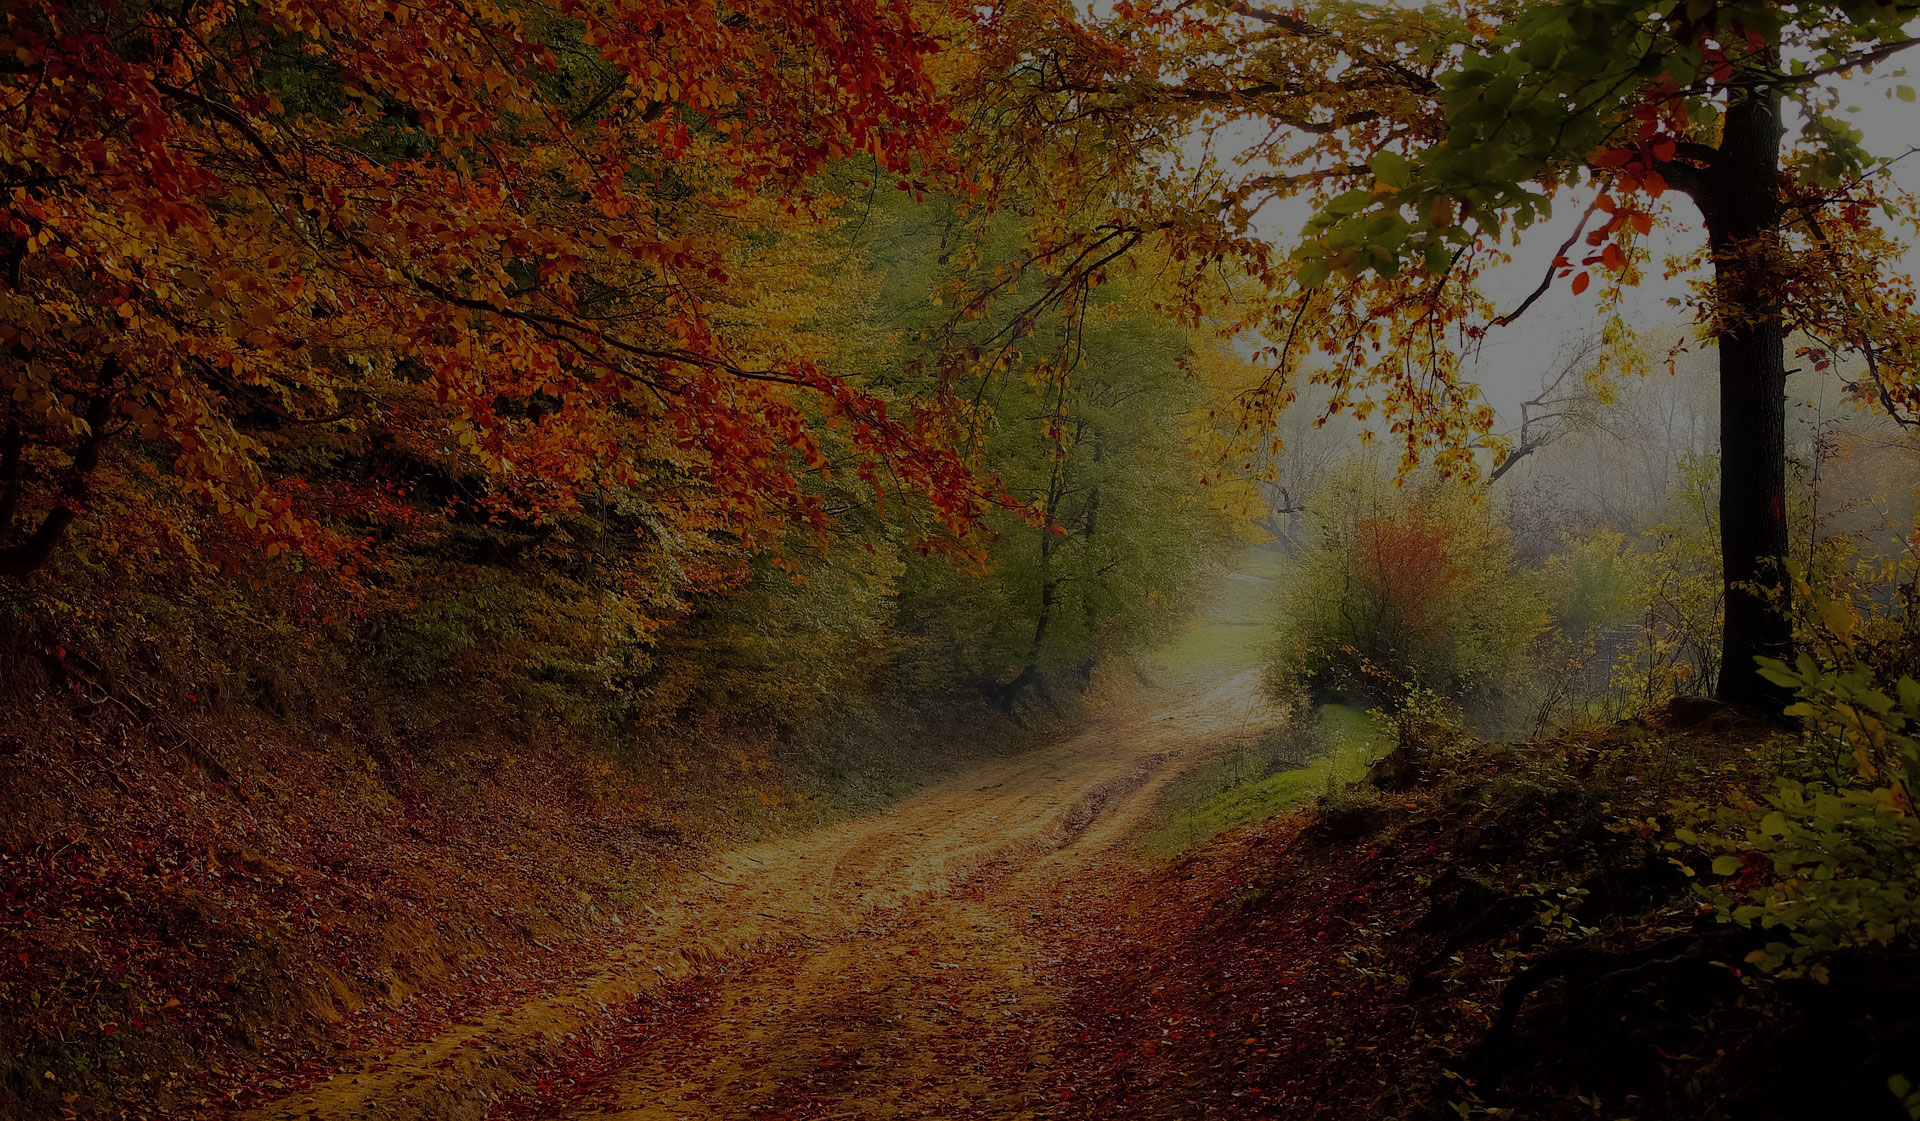 Forest Autumn Fall Season Nature Road Landscape